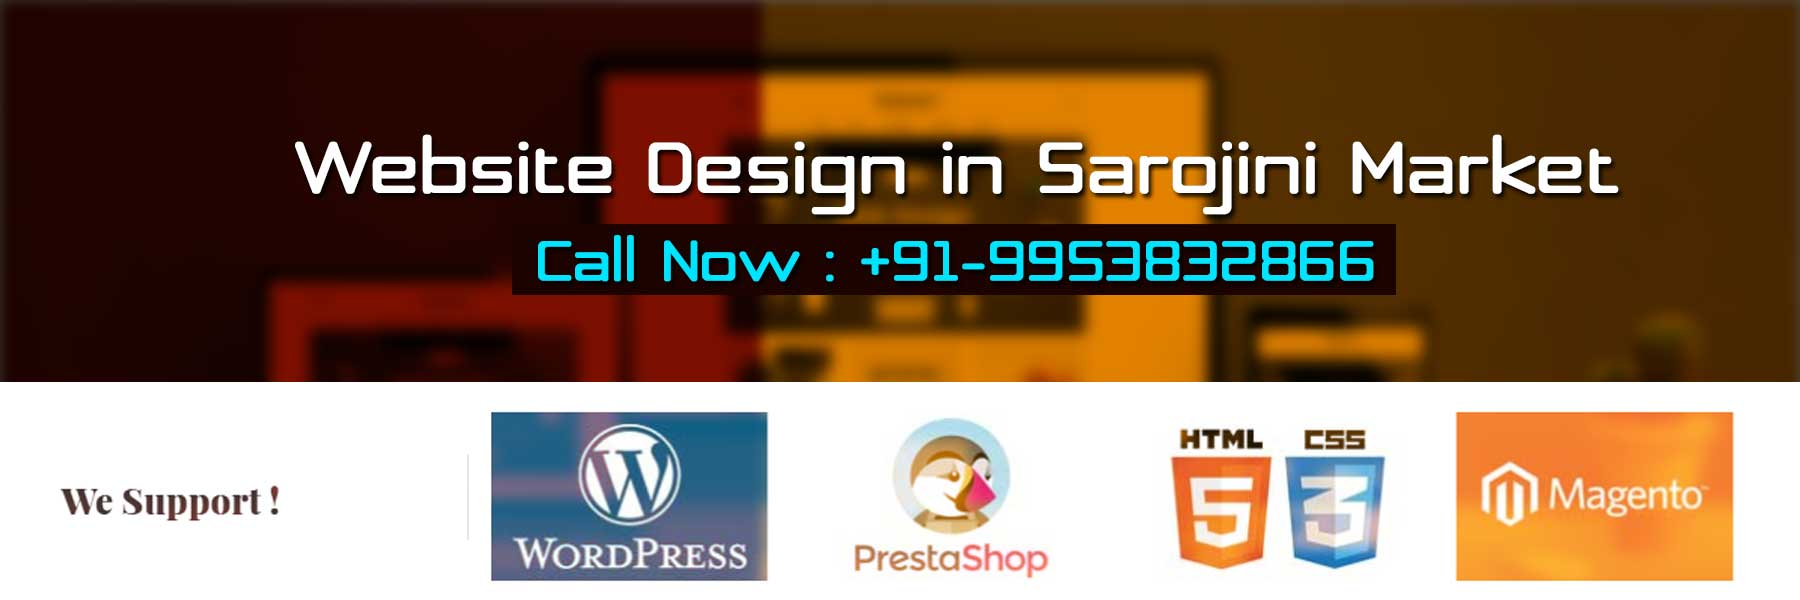 Website Design in Sarojini Market